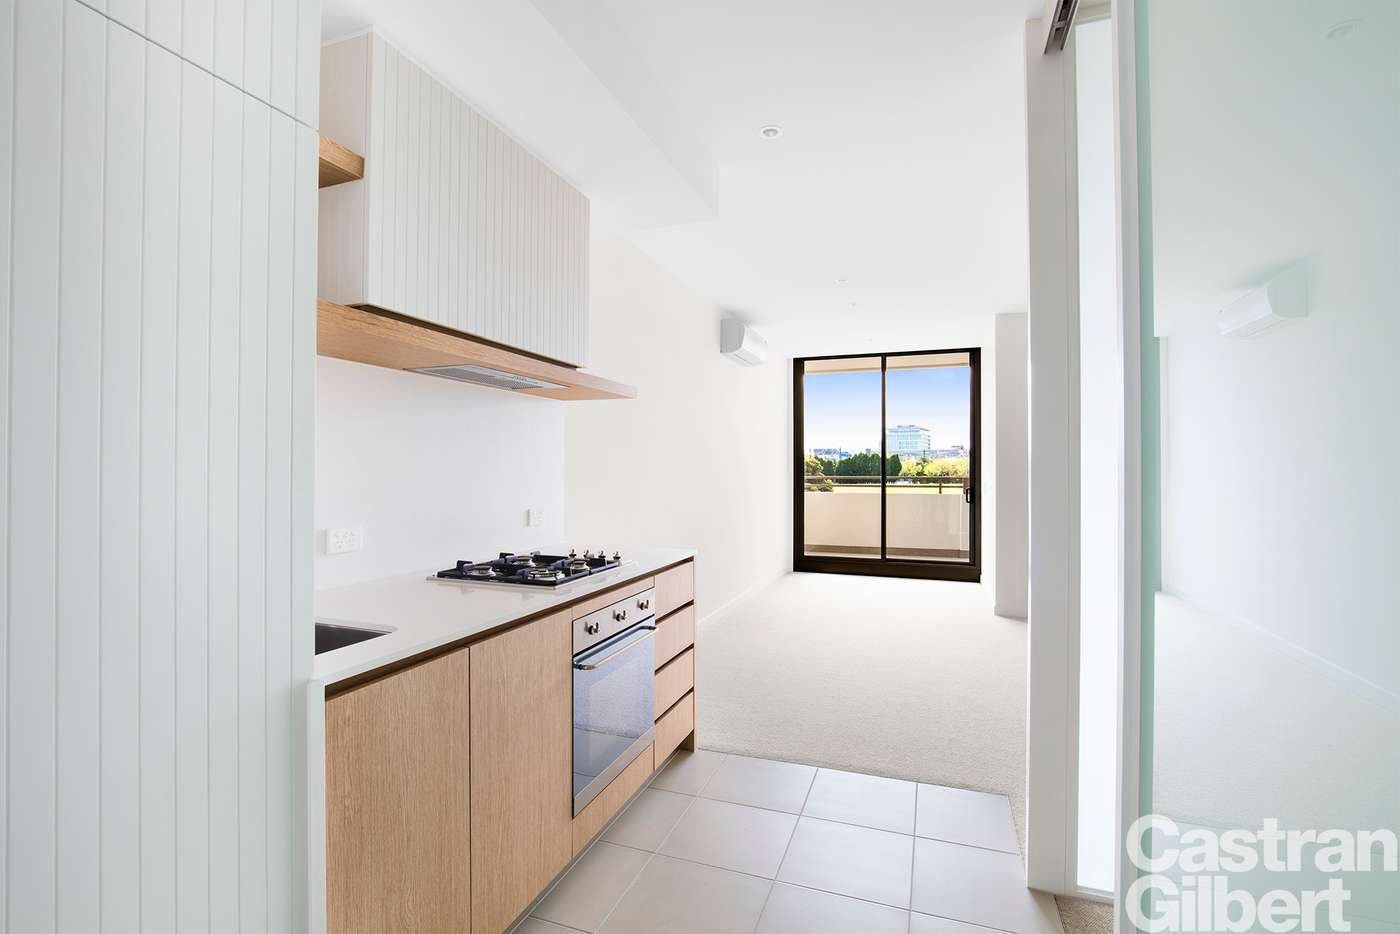 Main view of Homely apartment listing, 412/11 Bond Street, Caulfield VIC 3162